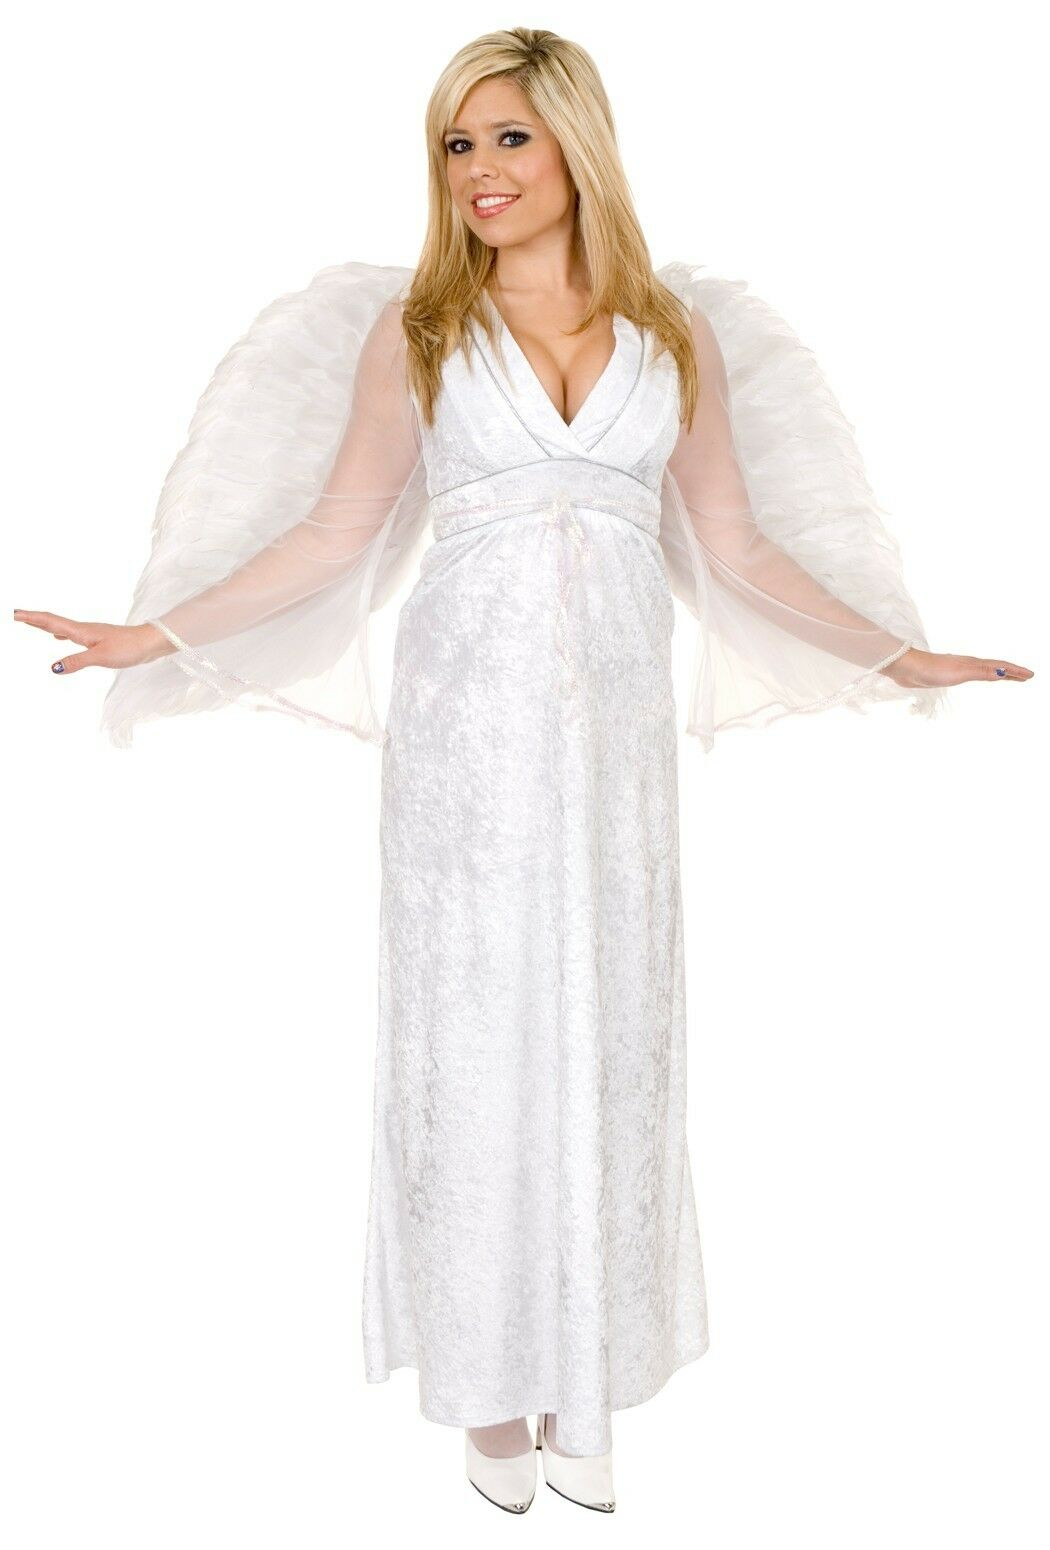 angel baby white gown christmas dress up halloween sexy adult costume - Christmas Dress Up